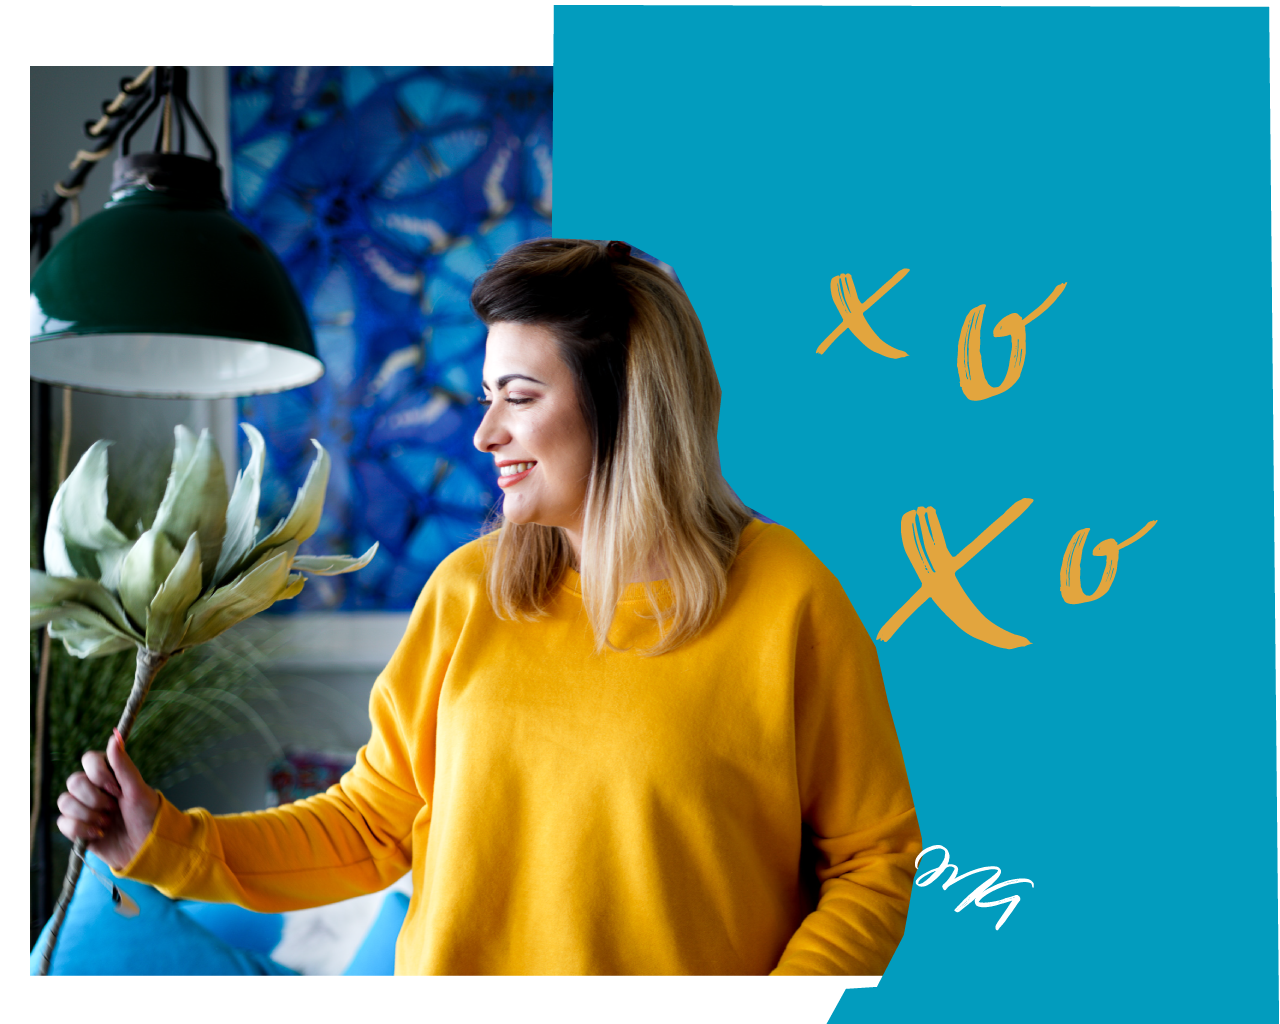 Why Choose ME… - I work with new mums who have returned to work or are looking to change career to suit their new role as a mum, I offer advice on how best to start again and keep motivated in the new balancing act that parenthood creates.